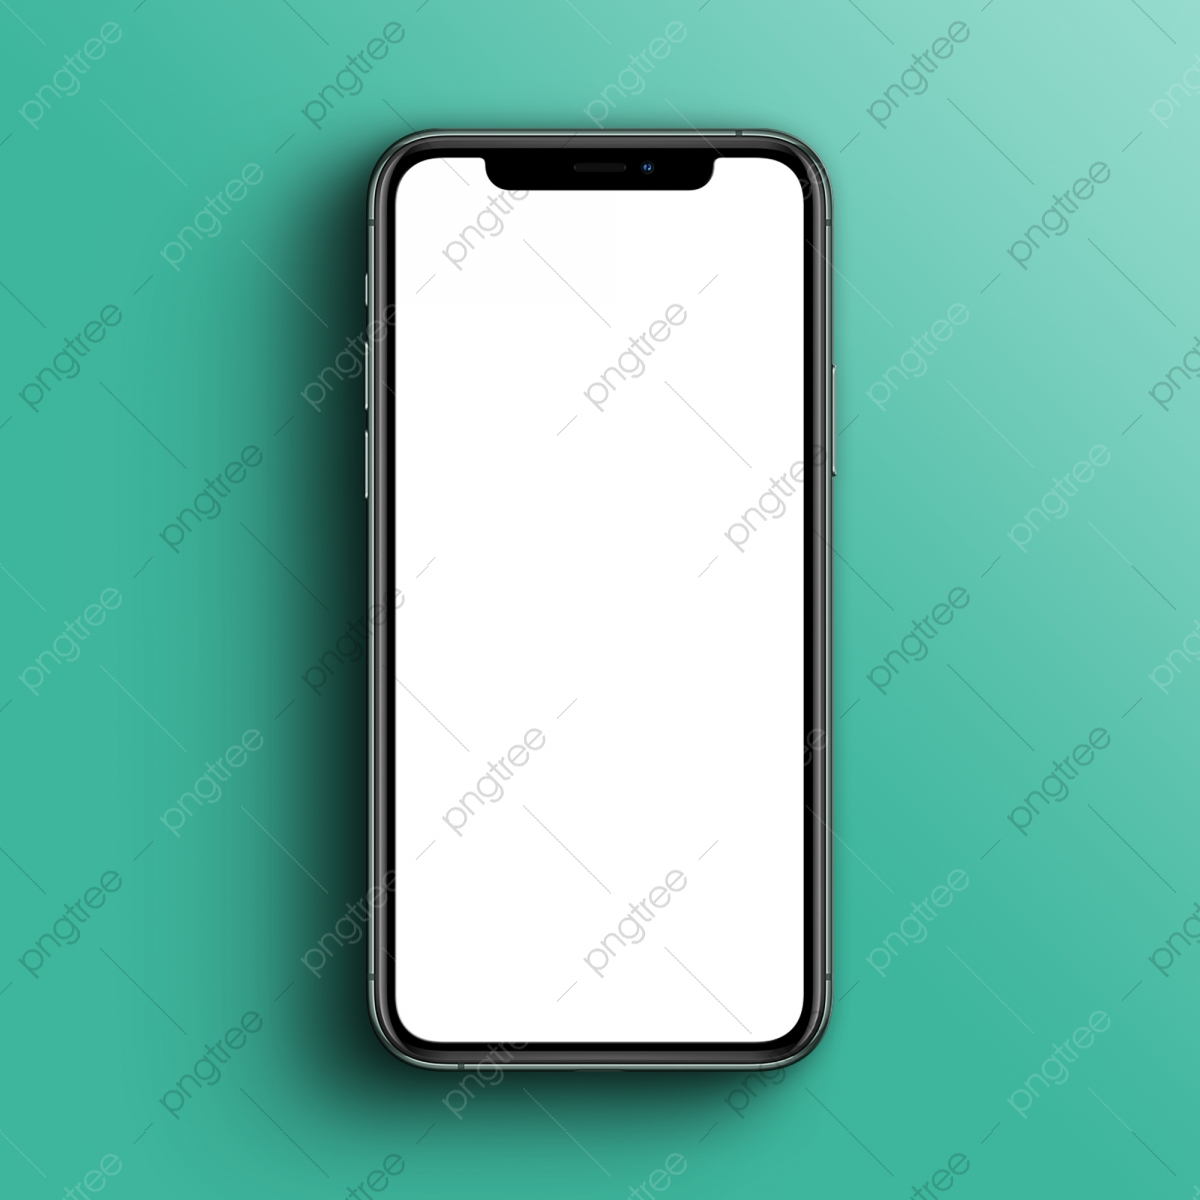 Iphone 11 Pro Mockup With Realistic Shadow Background